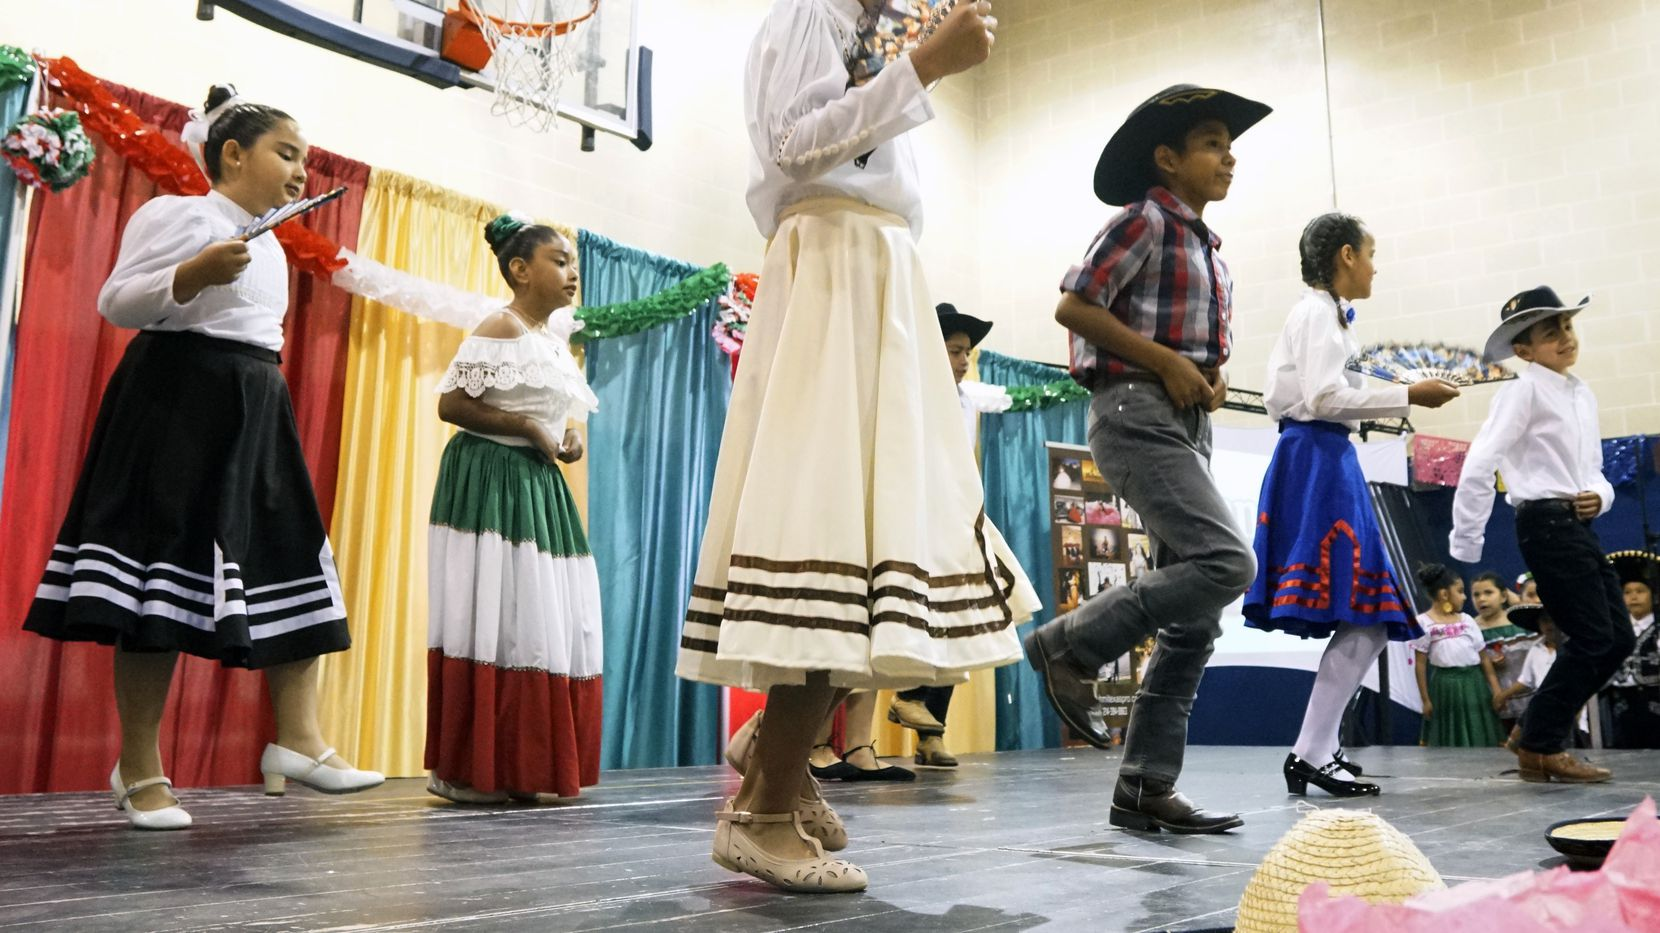 There'll be dancing in Irving for Cinco de Mayo, this time at Irving Mall. In 2019, children from Fine Arts Mentoring Amigas performed at Irving's Lee Park.